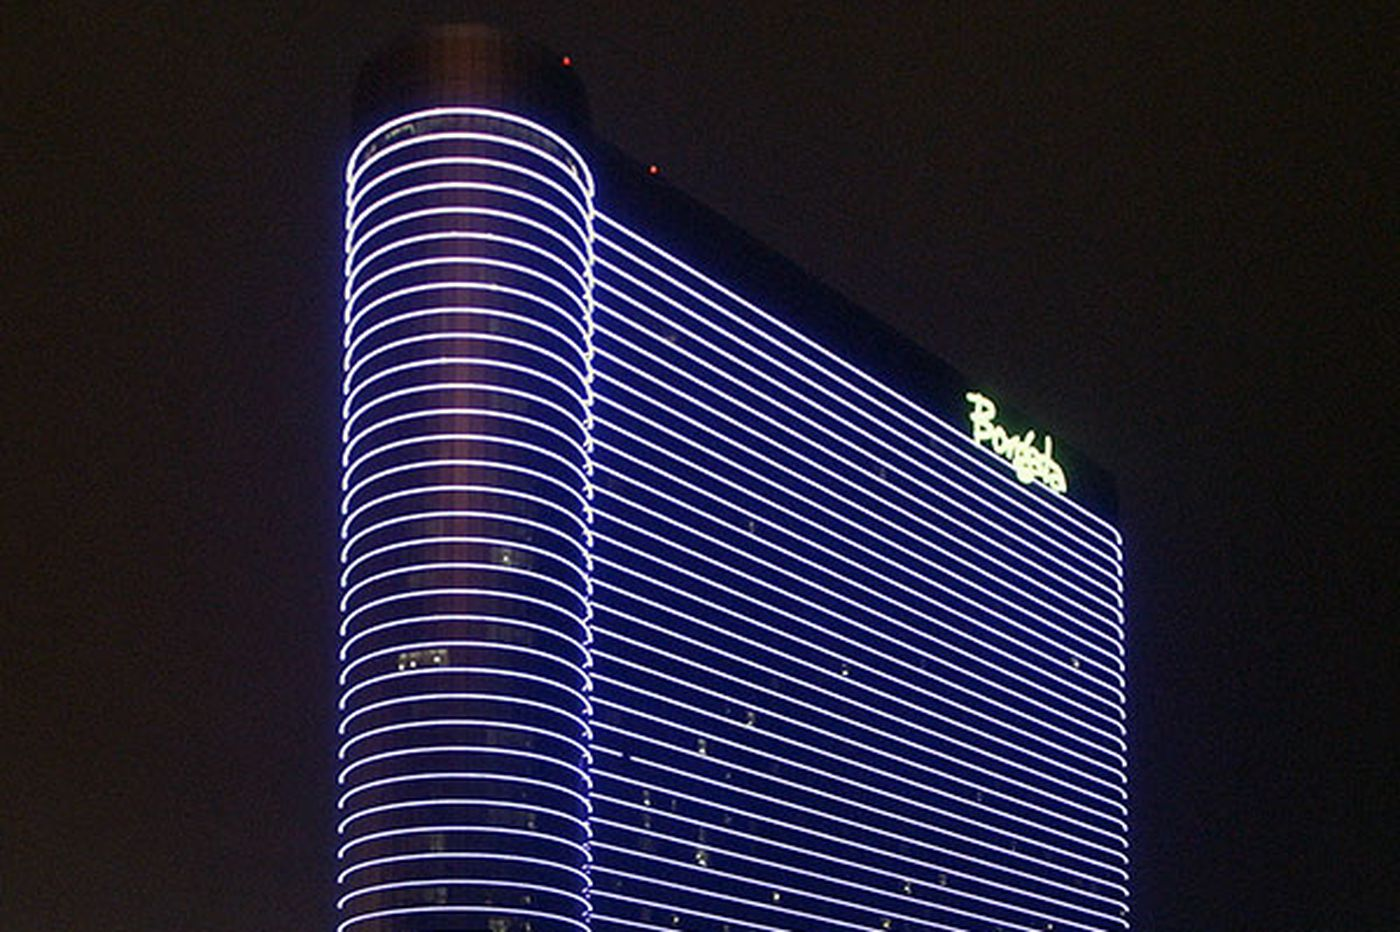 Borgata sues A.C. to block borrowing